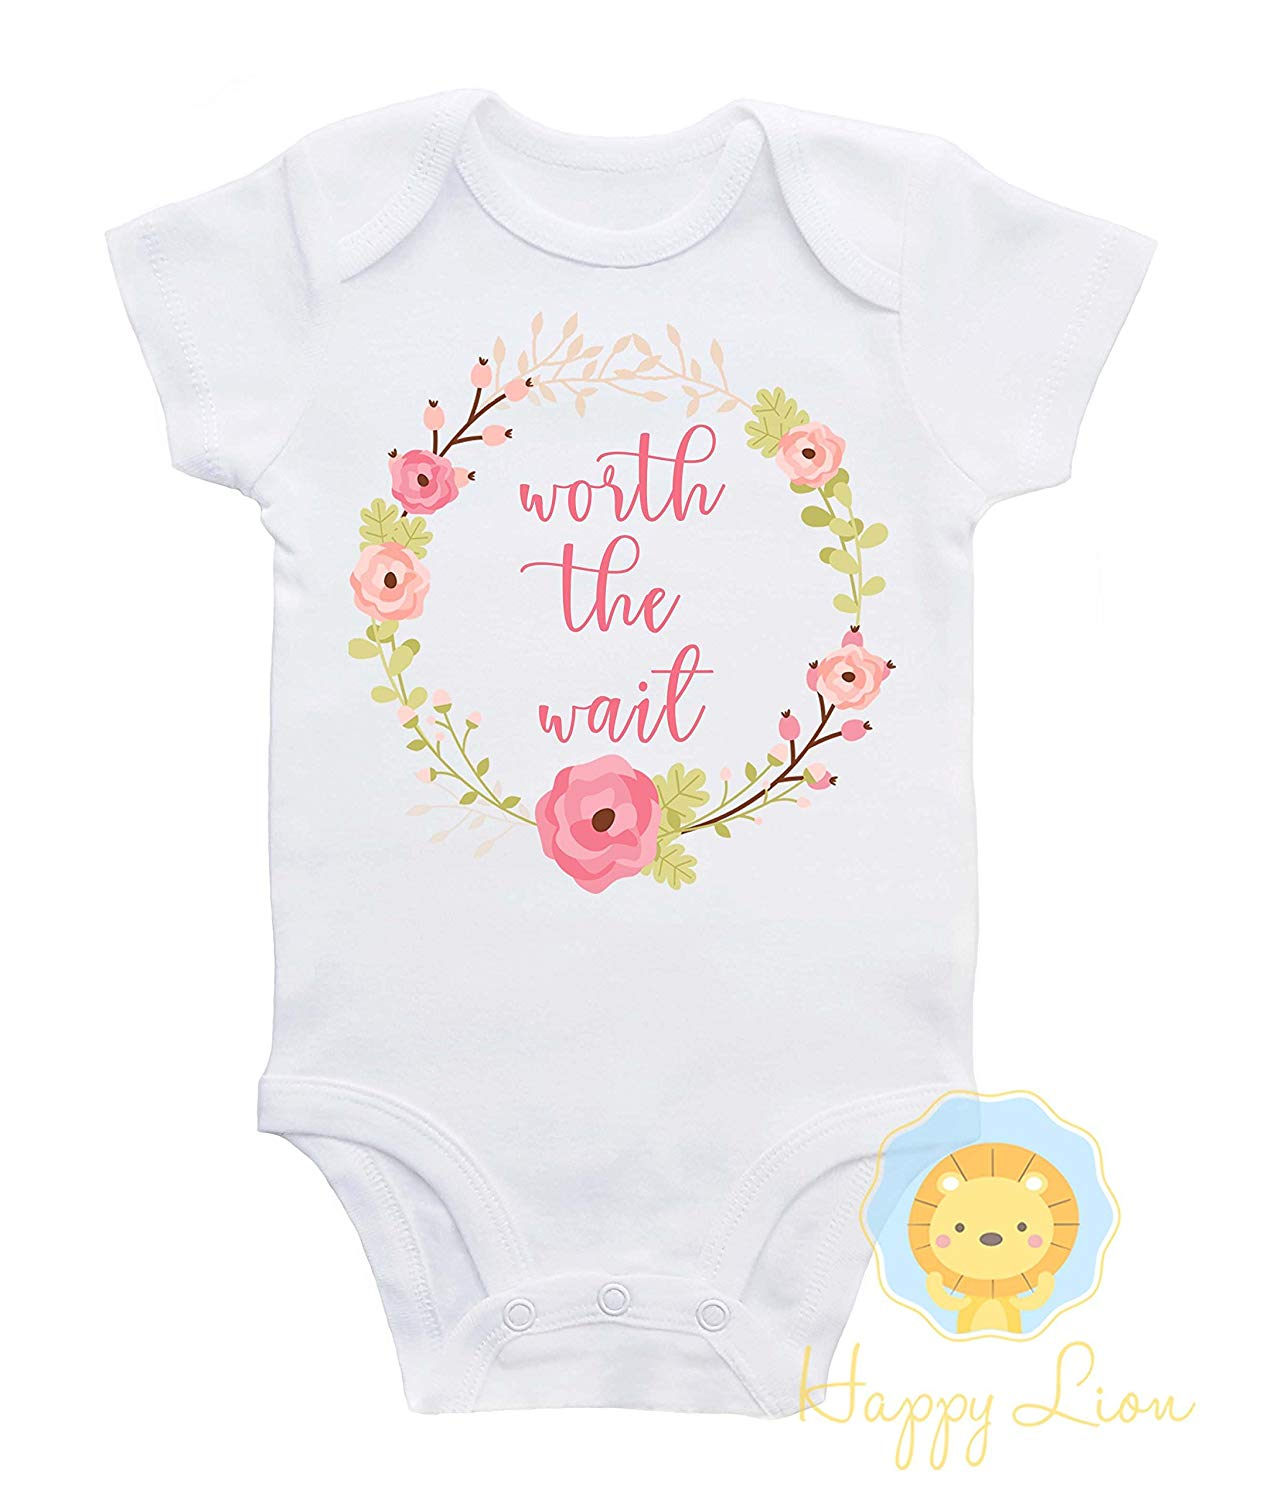 276770bddede Get Quotations · Happy Lion Clothing - Worth the wait Onesie®